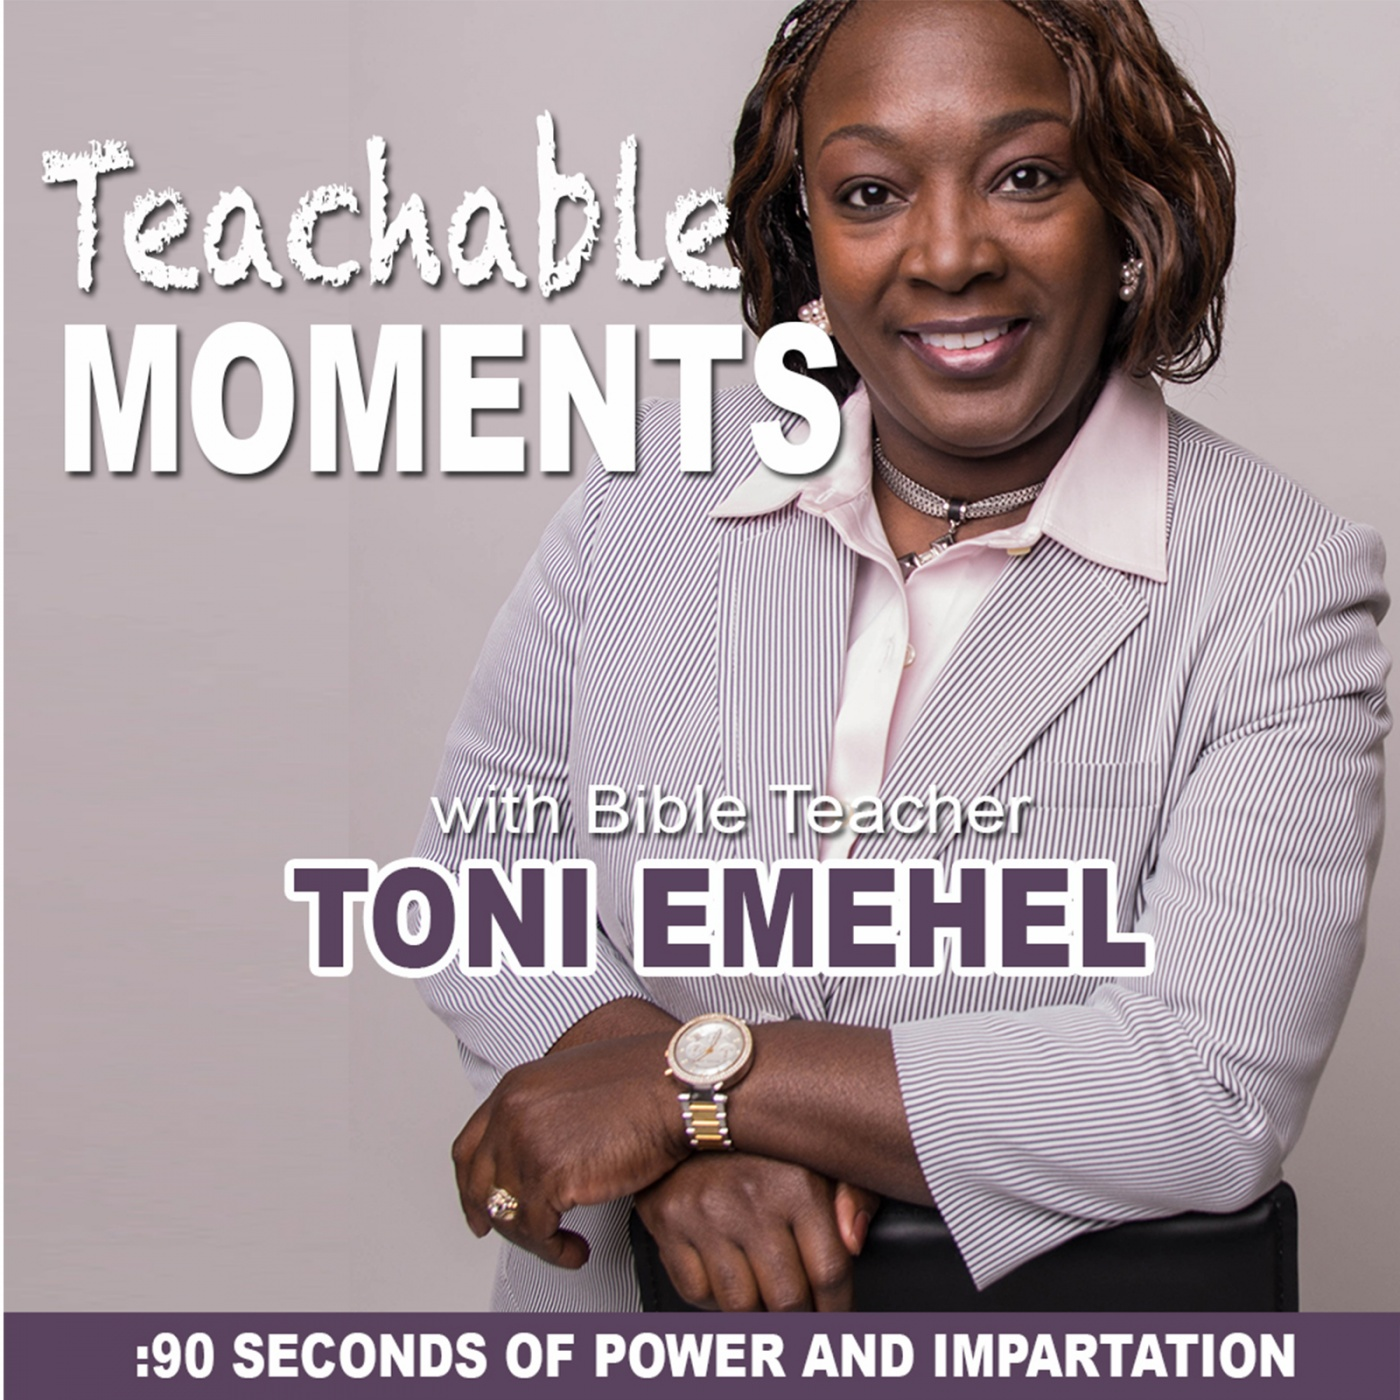 Teachable Moments with Toni Emehel